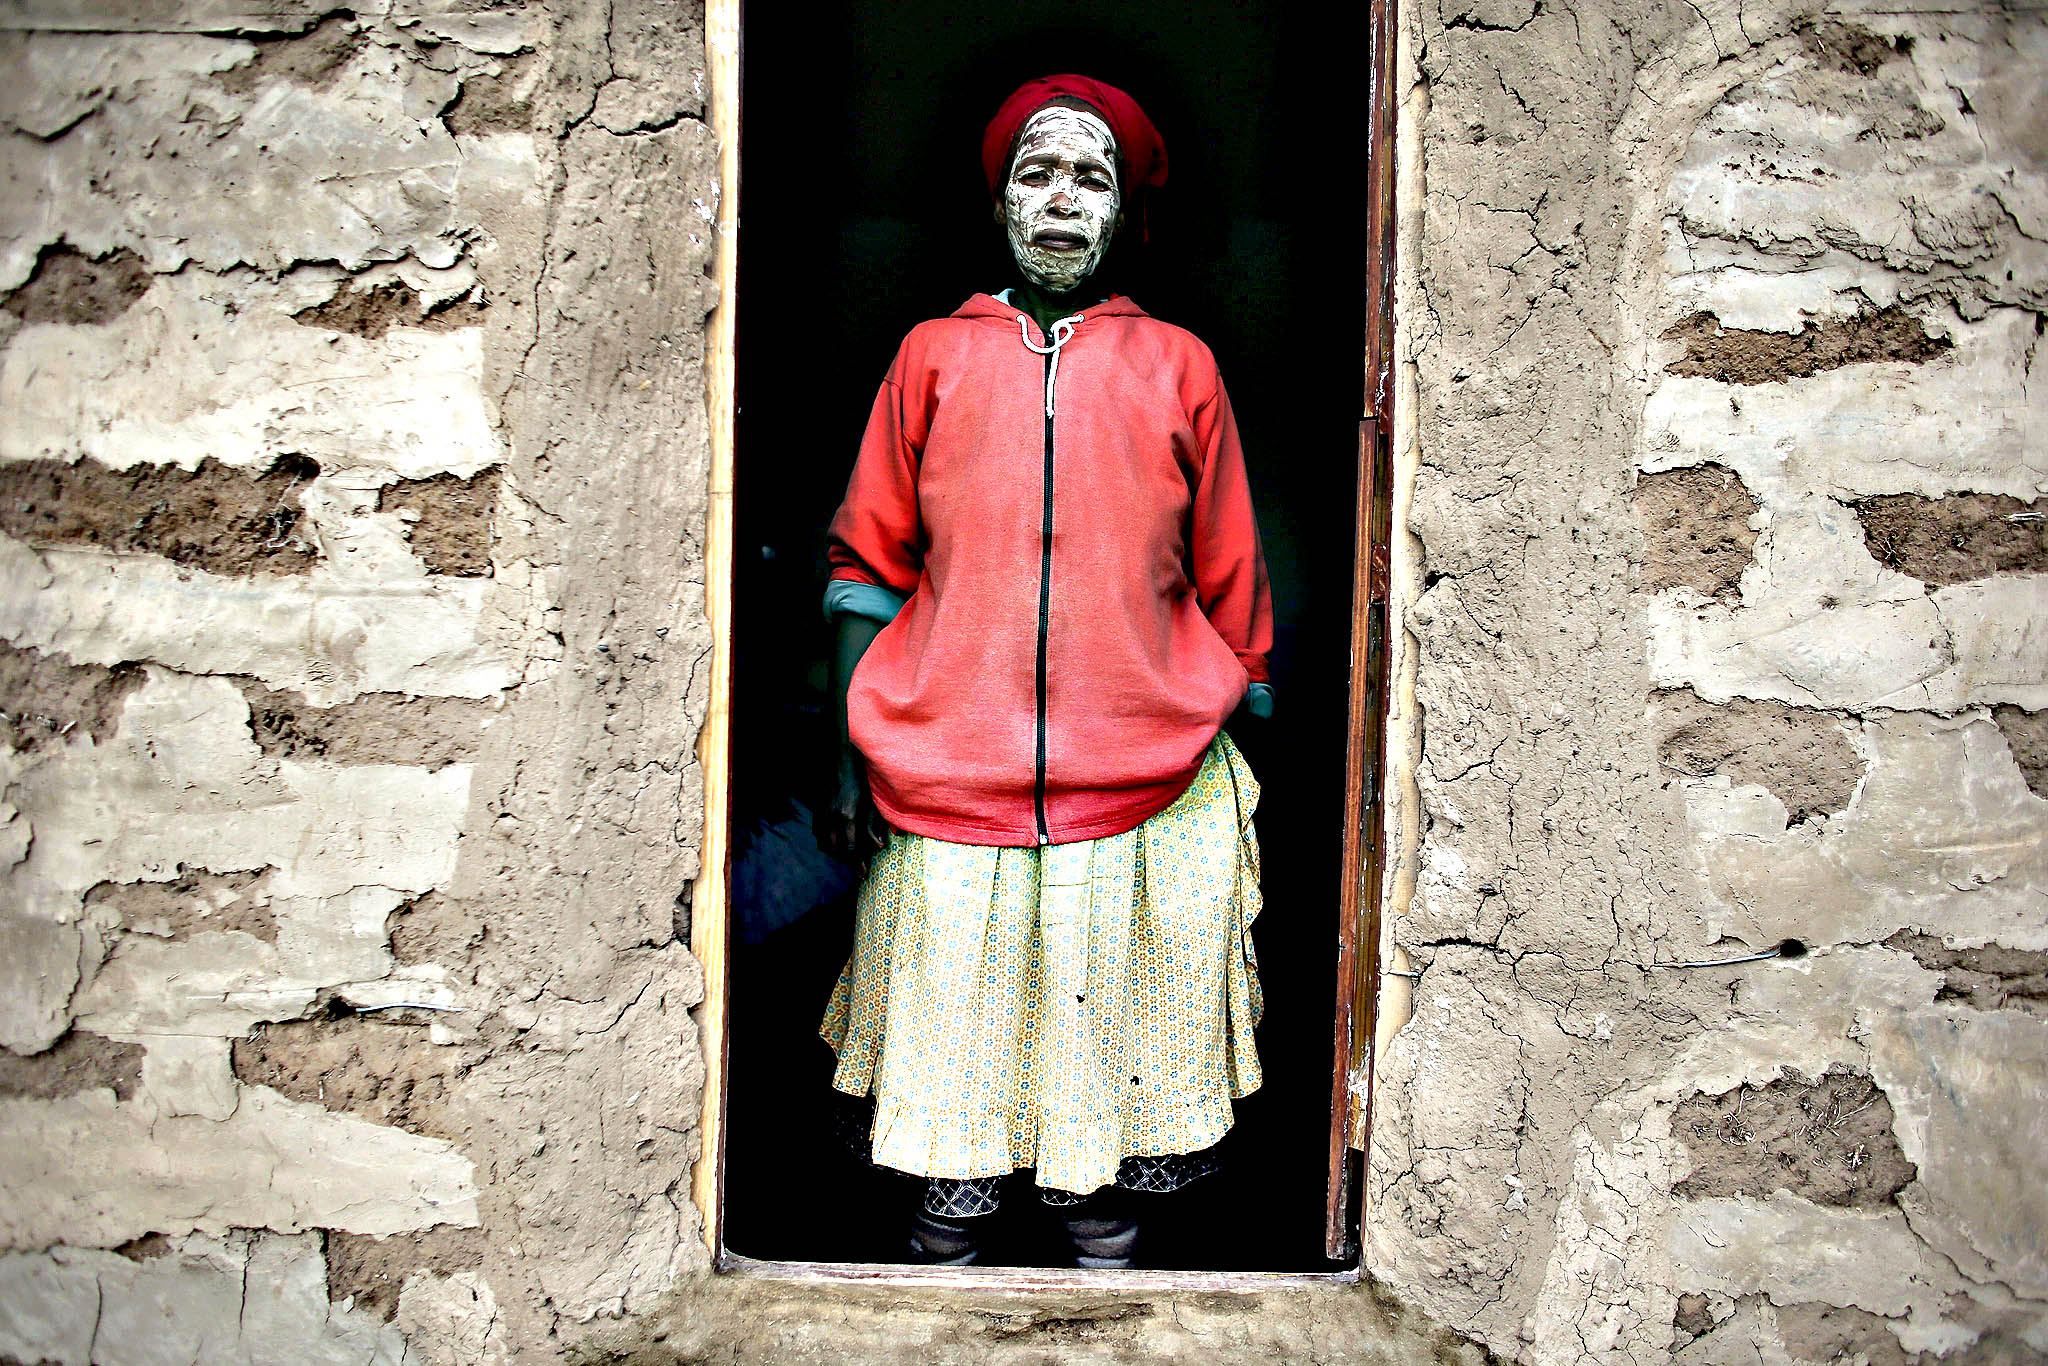 Sixty-two-year-old South African woman Olivia Tsangane, a neigbour of late South African president Nelson Mandela, poses for a photograph in Mandela's ancestral village of Qunu, South Africa, 09 December 2013. The former South African president and anti-Apartheid icon died after a long illness 05 December at the age of 95. He will be buried at his ancestral home in Qunu on 15 December 2013.